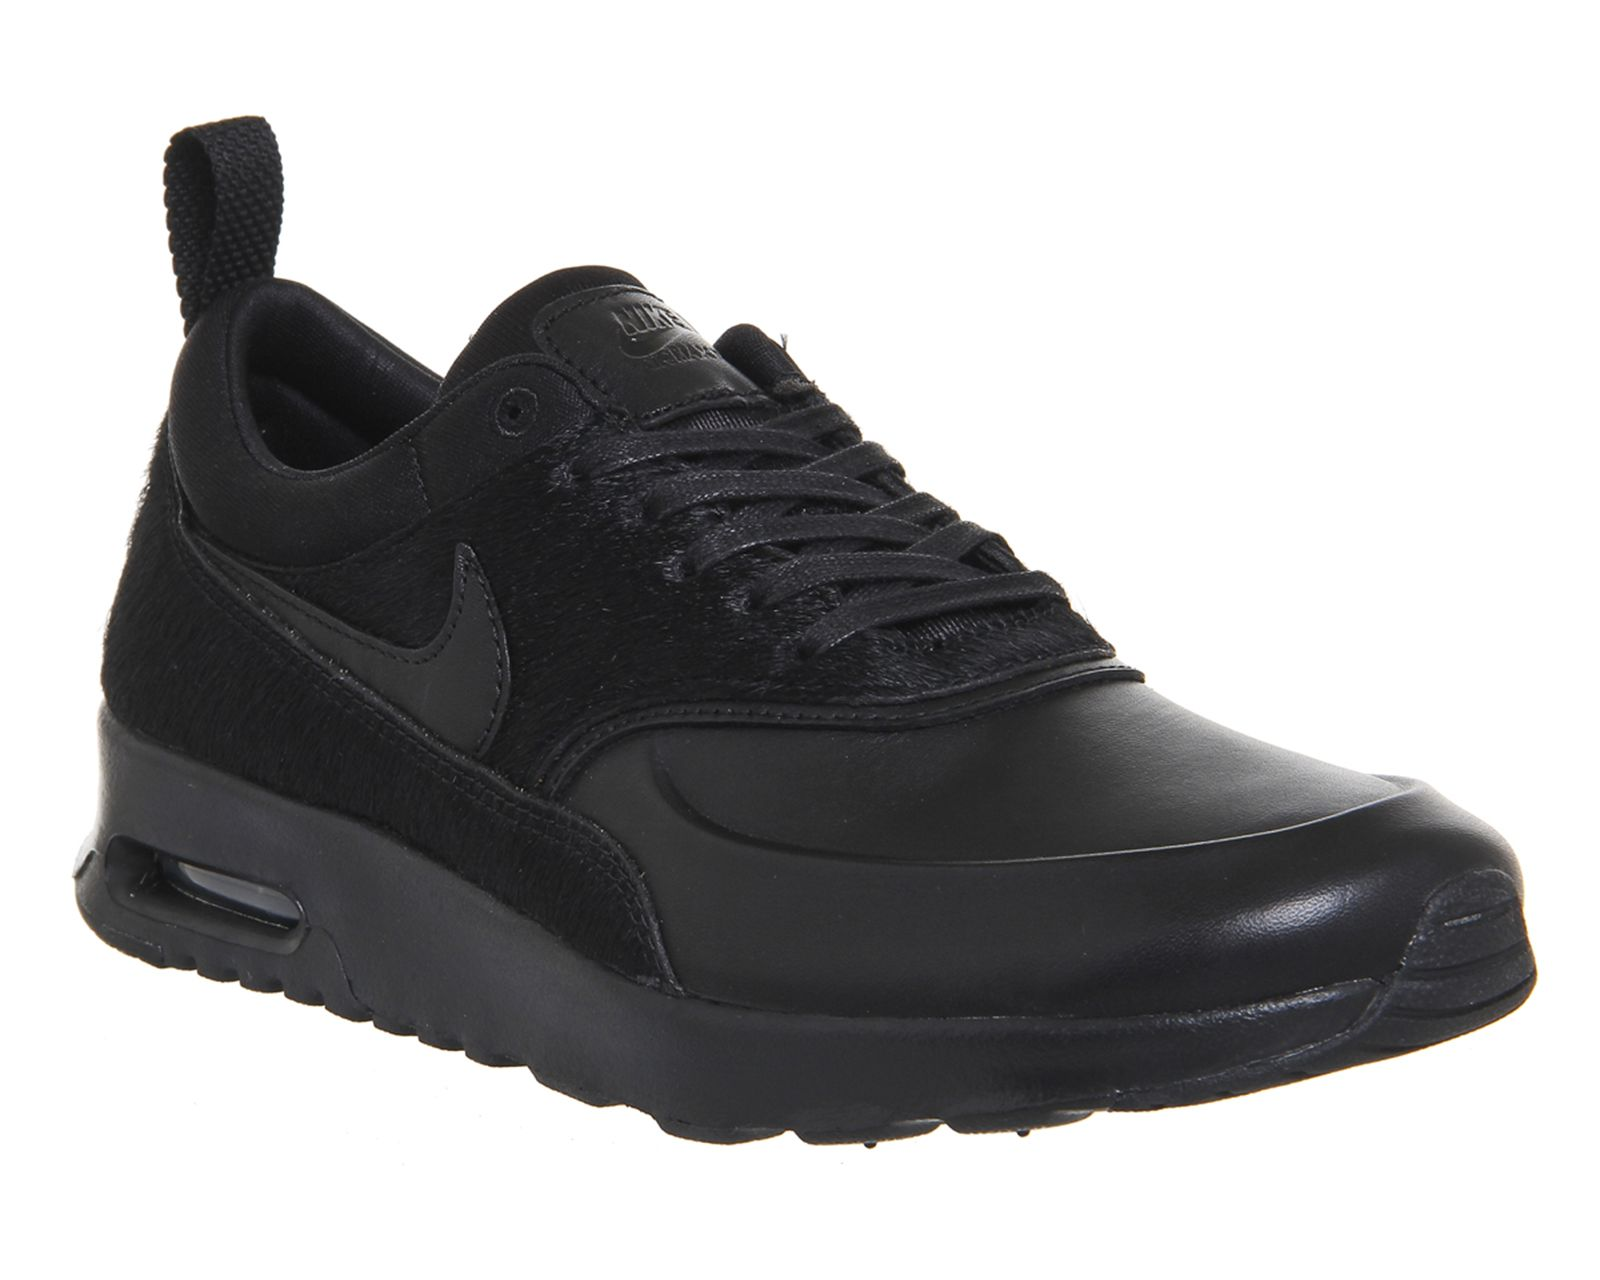 Nike Air Max Thea Black Black Anthracite from OFFICE